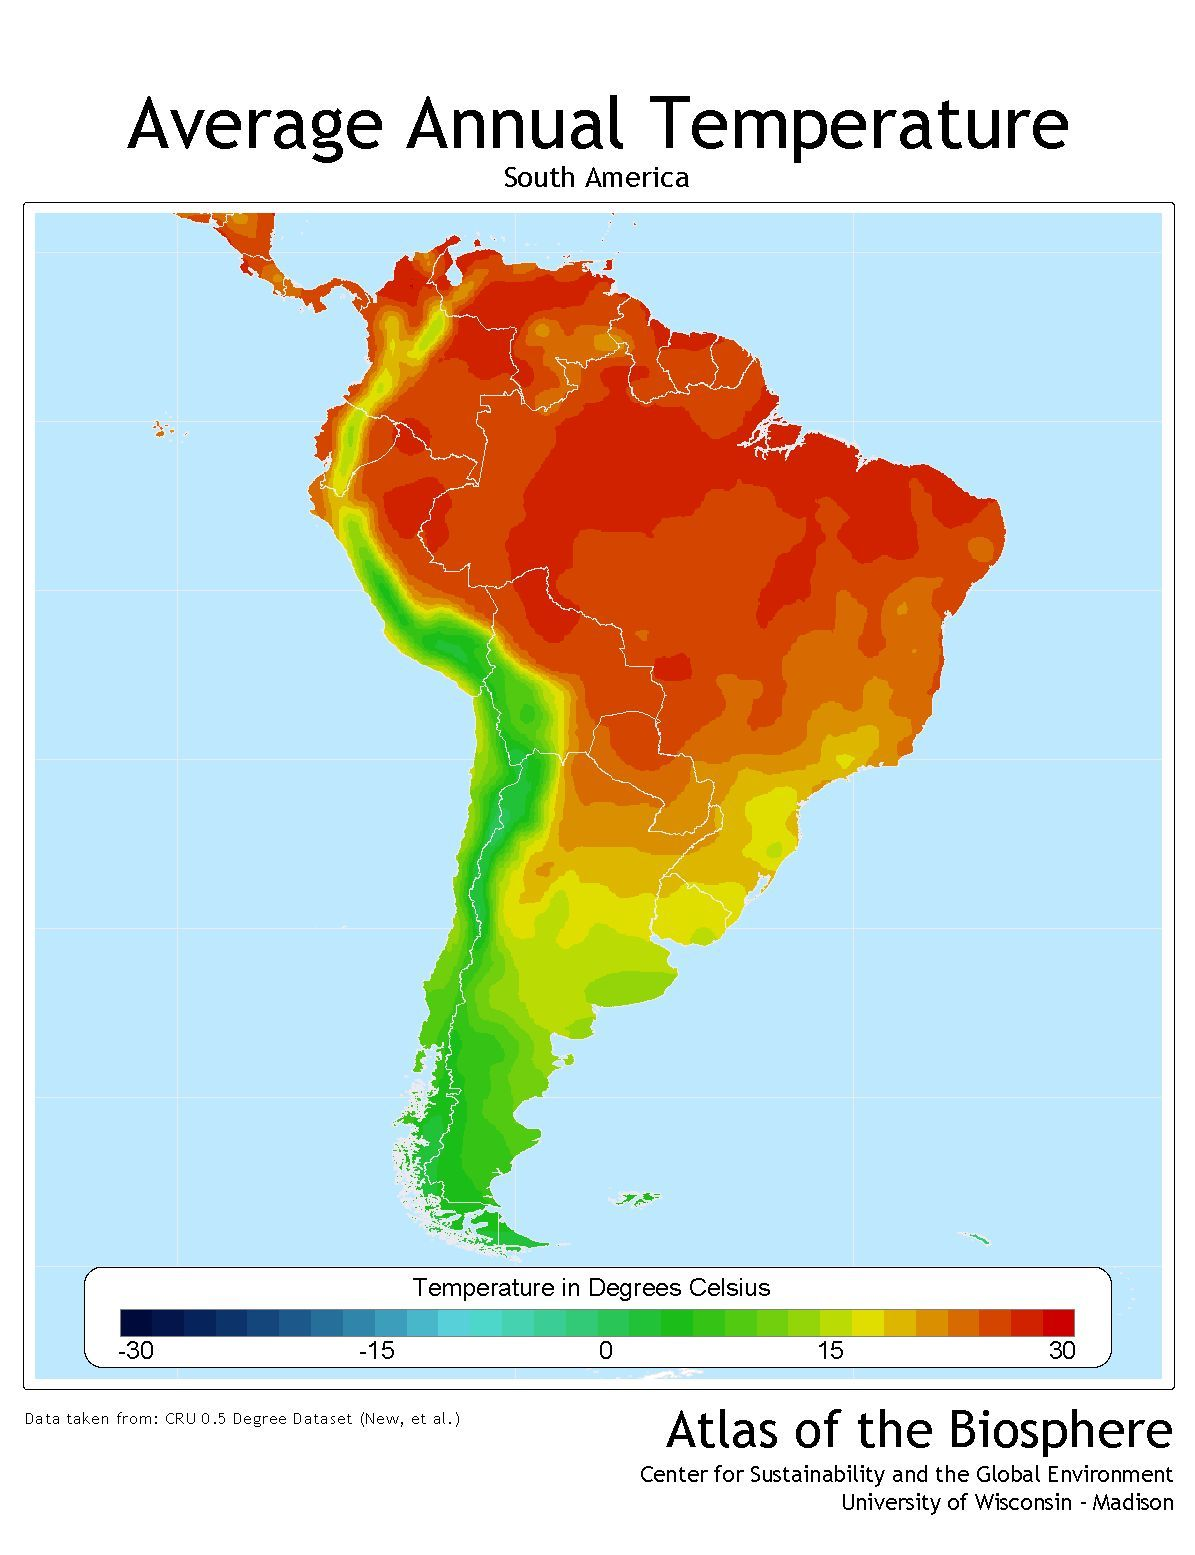 Climate map of south america google search latin culture pinterest climate map of south america google search gumiabroncs Image collections